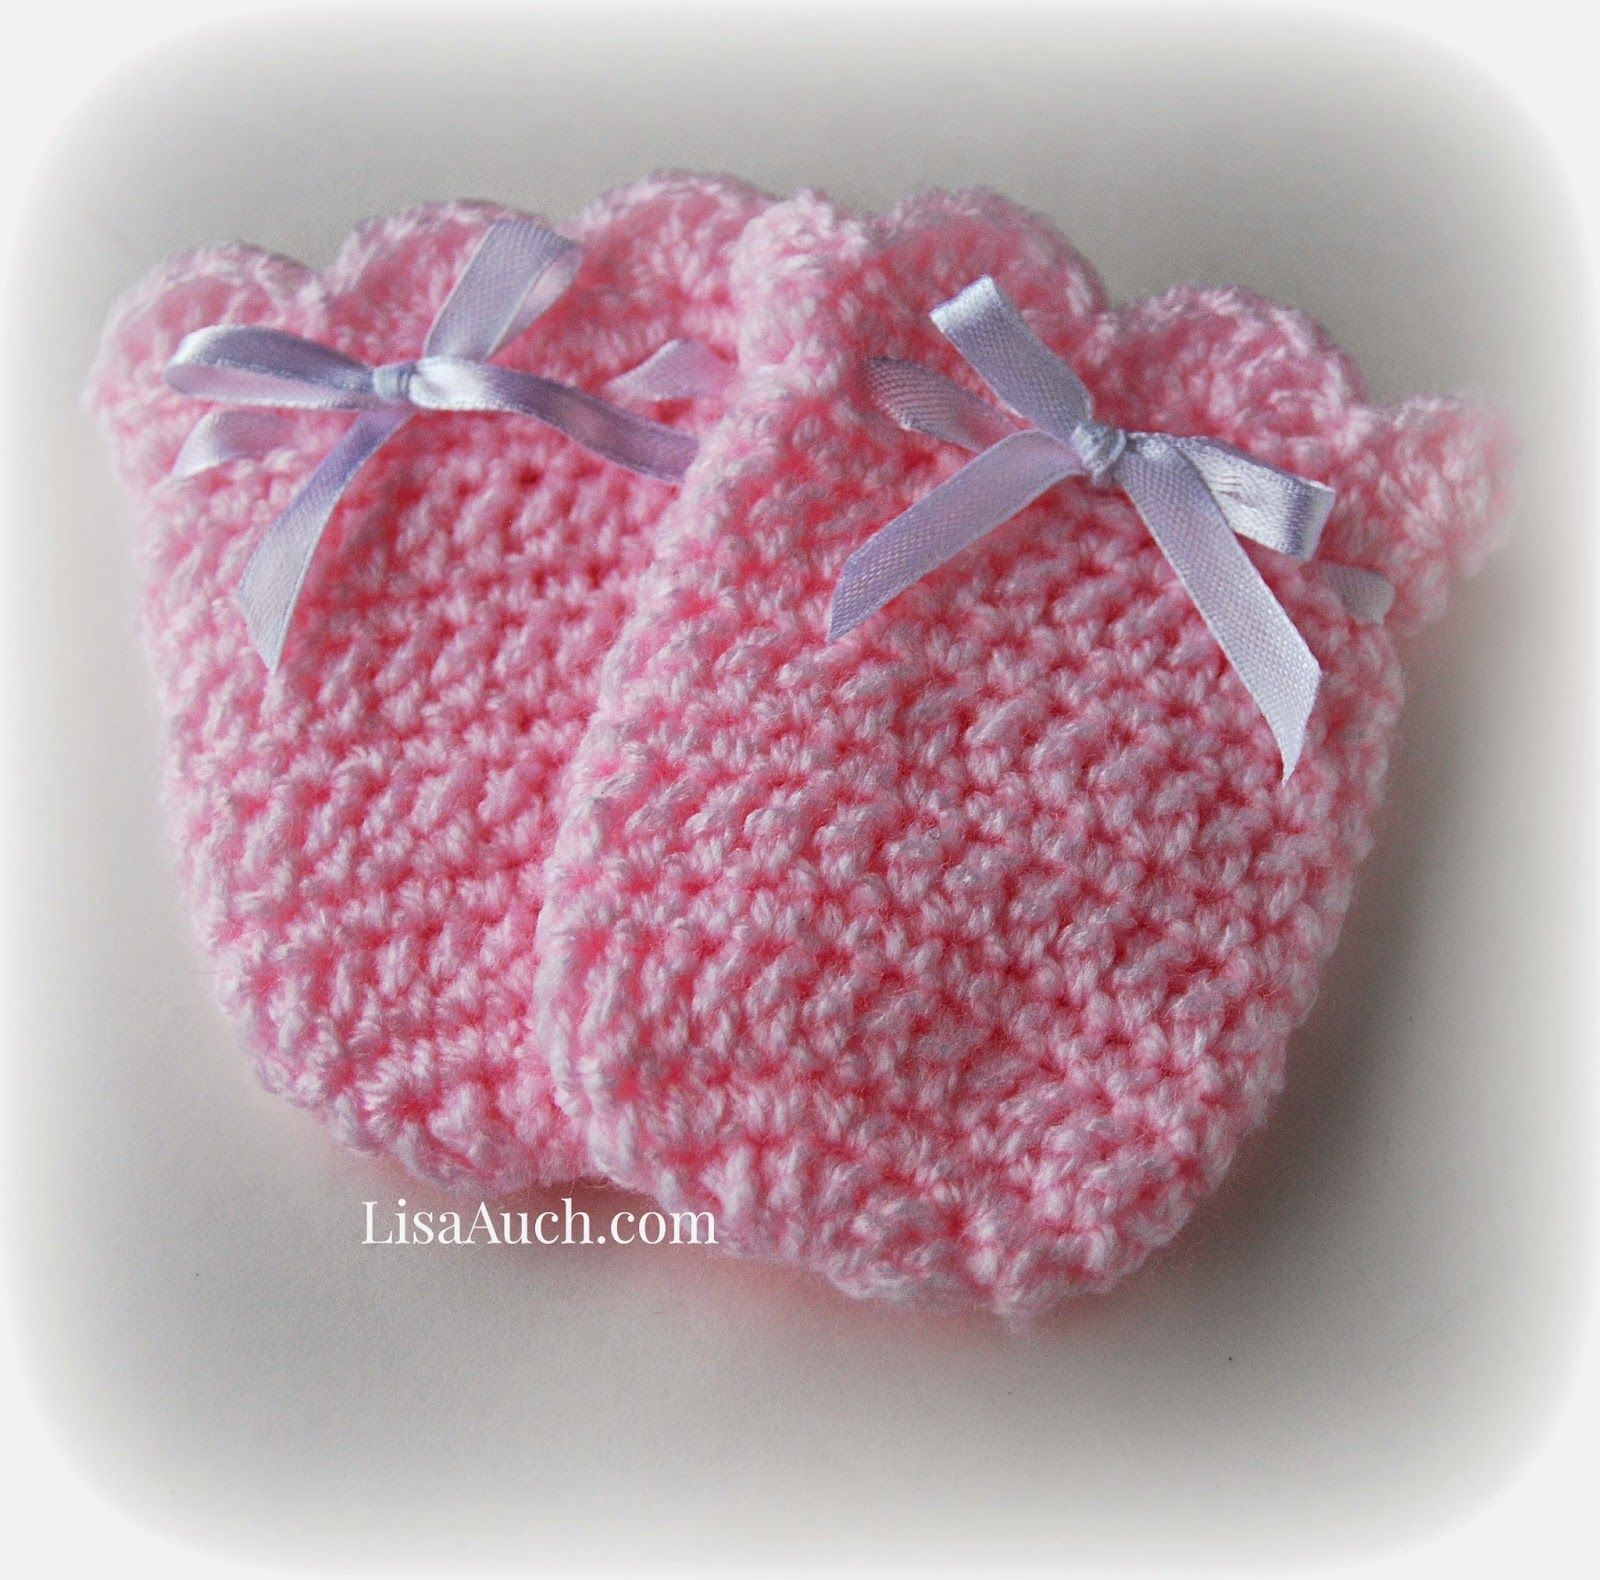 Crochet baby mittens crochet baby mittens baby mittens and free crochet baby mittens bankloansurffo Images